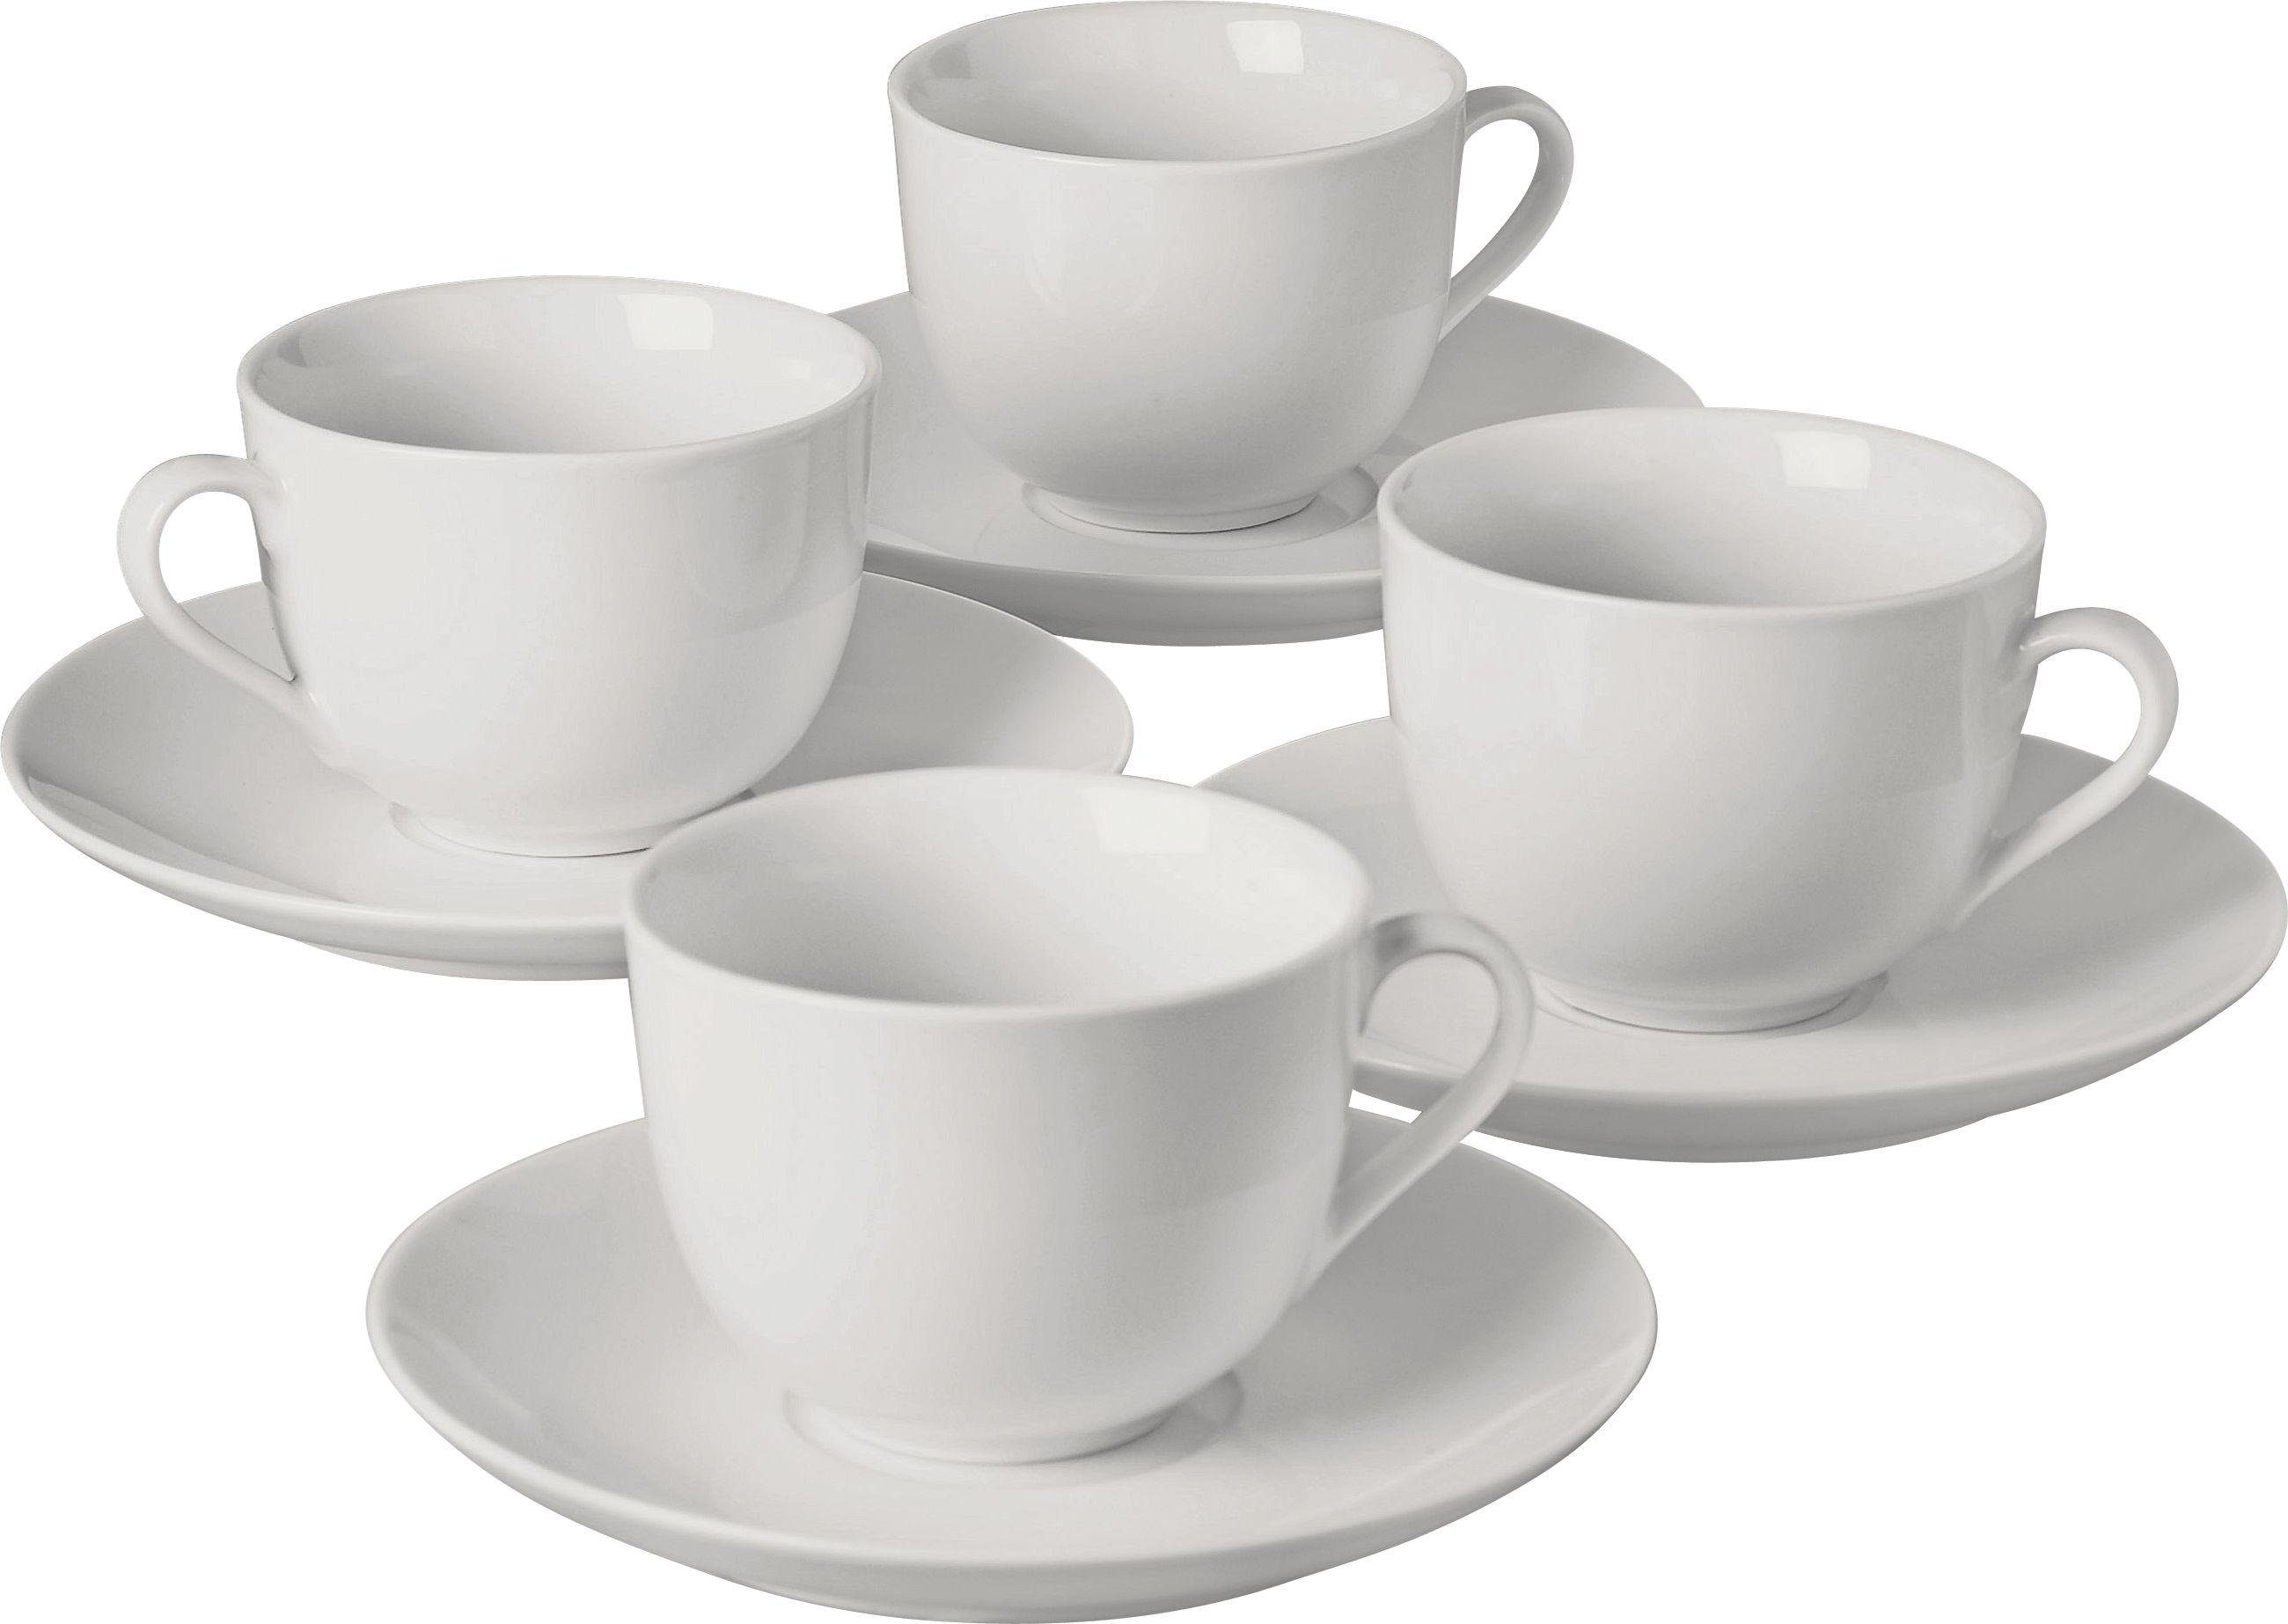 Argos Home 4 Piece Porcelain Tea Cups & Saucers Set - White